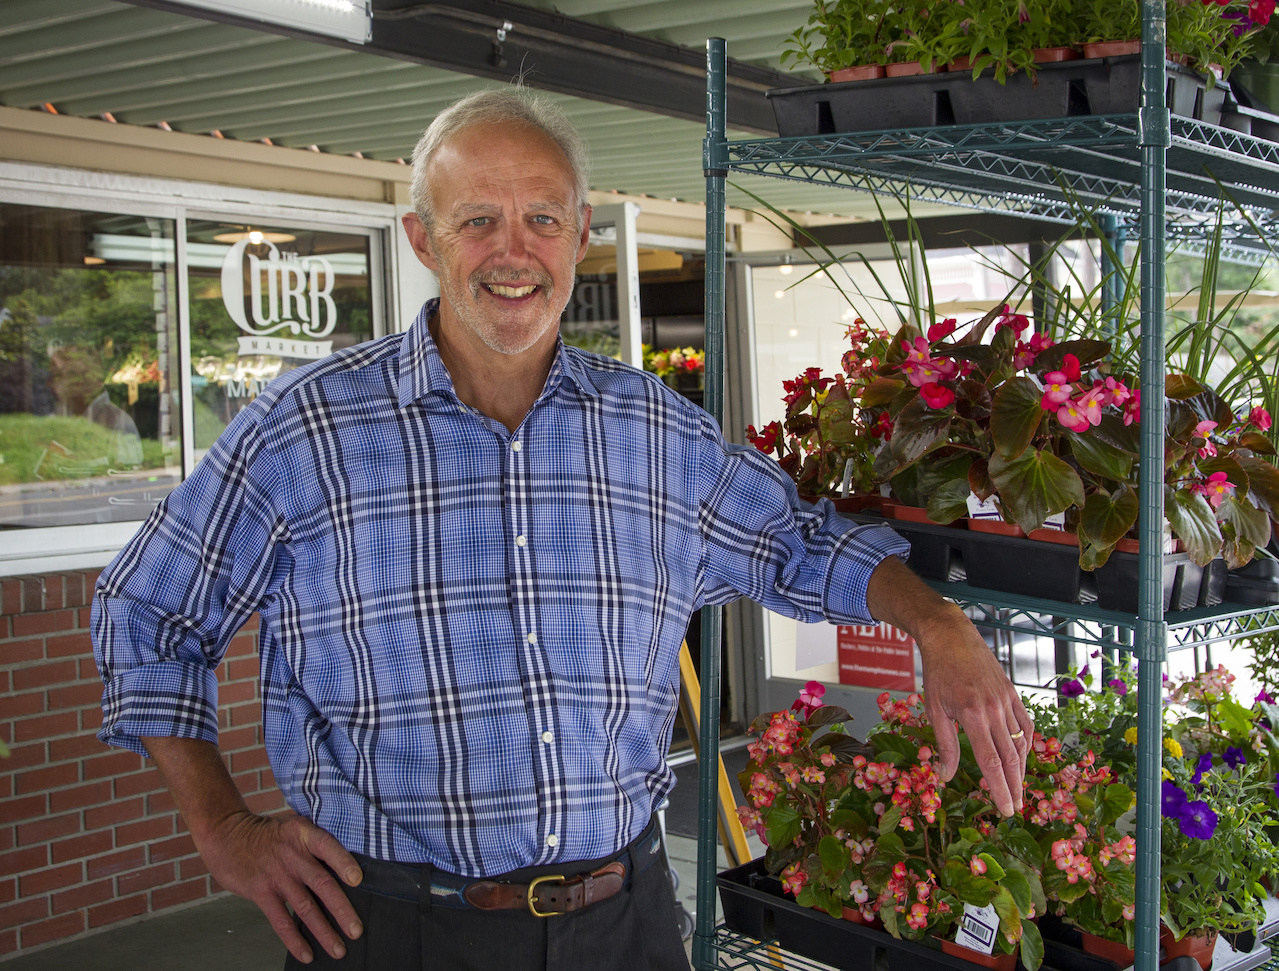 Peter Schutt, owner of The Curb Market